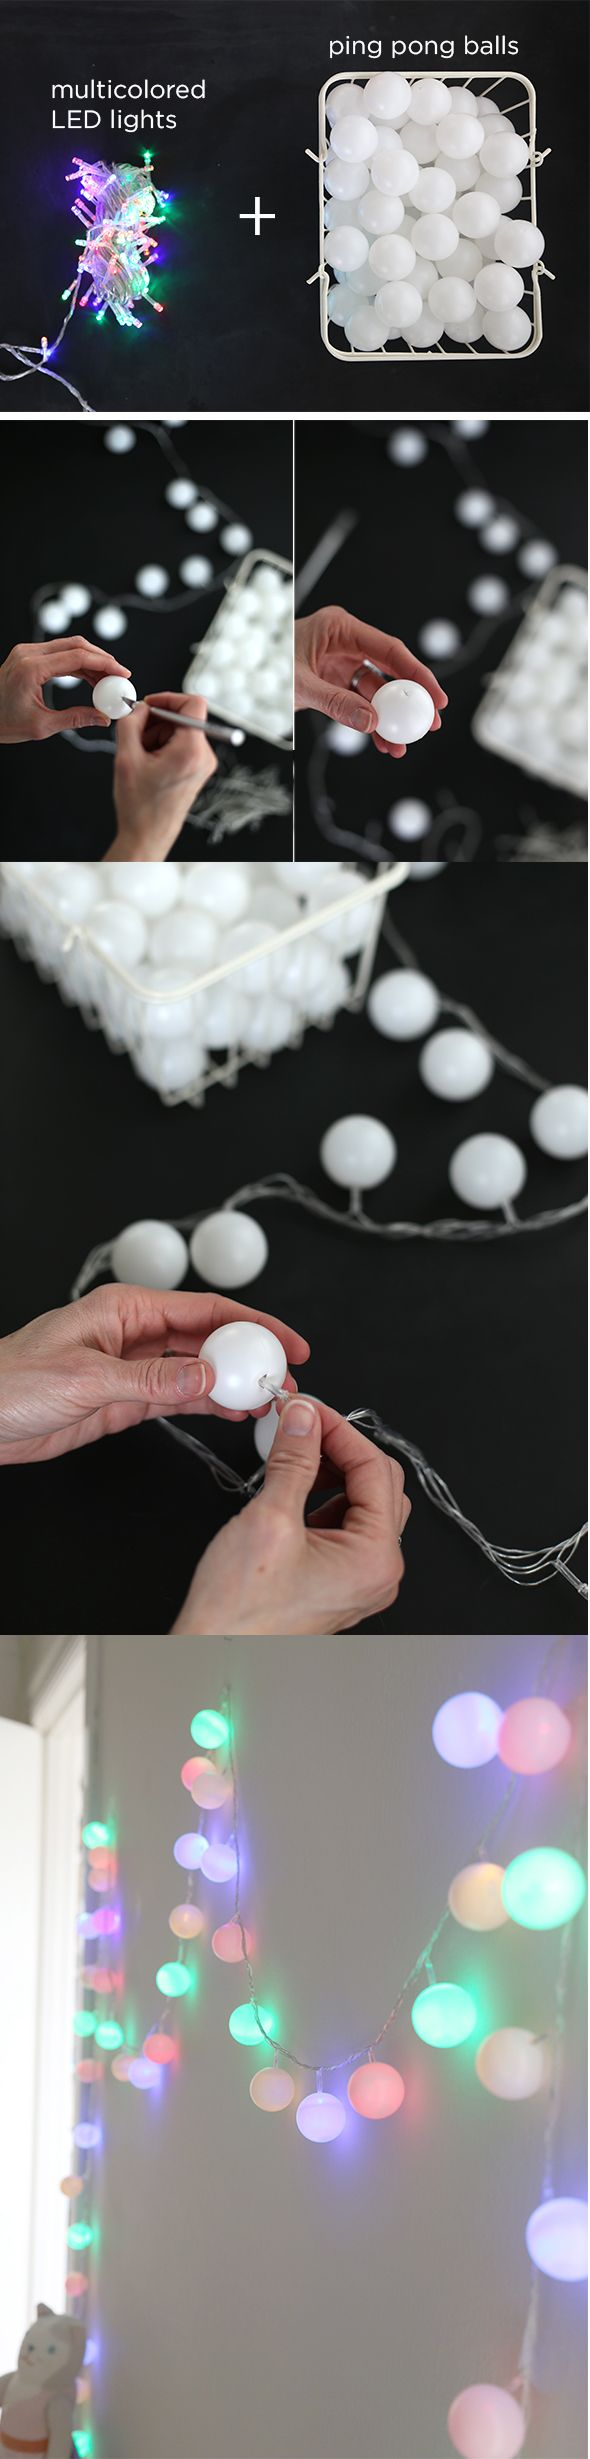 #DIY : Ping pong balls + lights